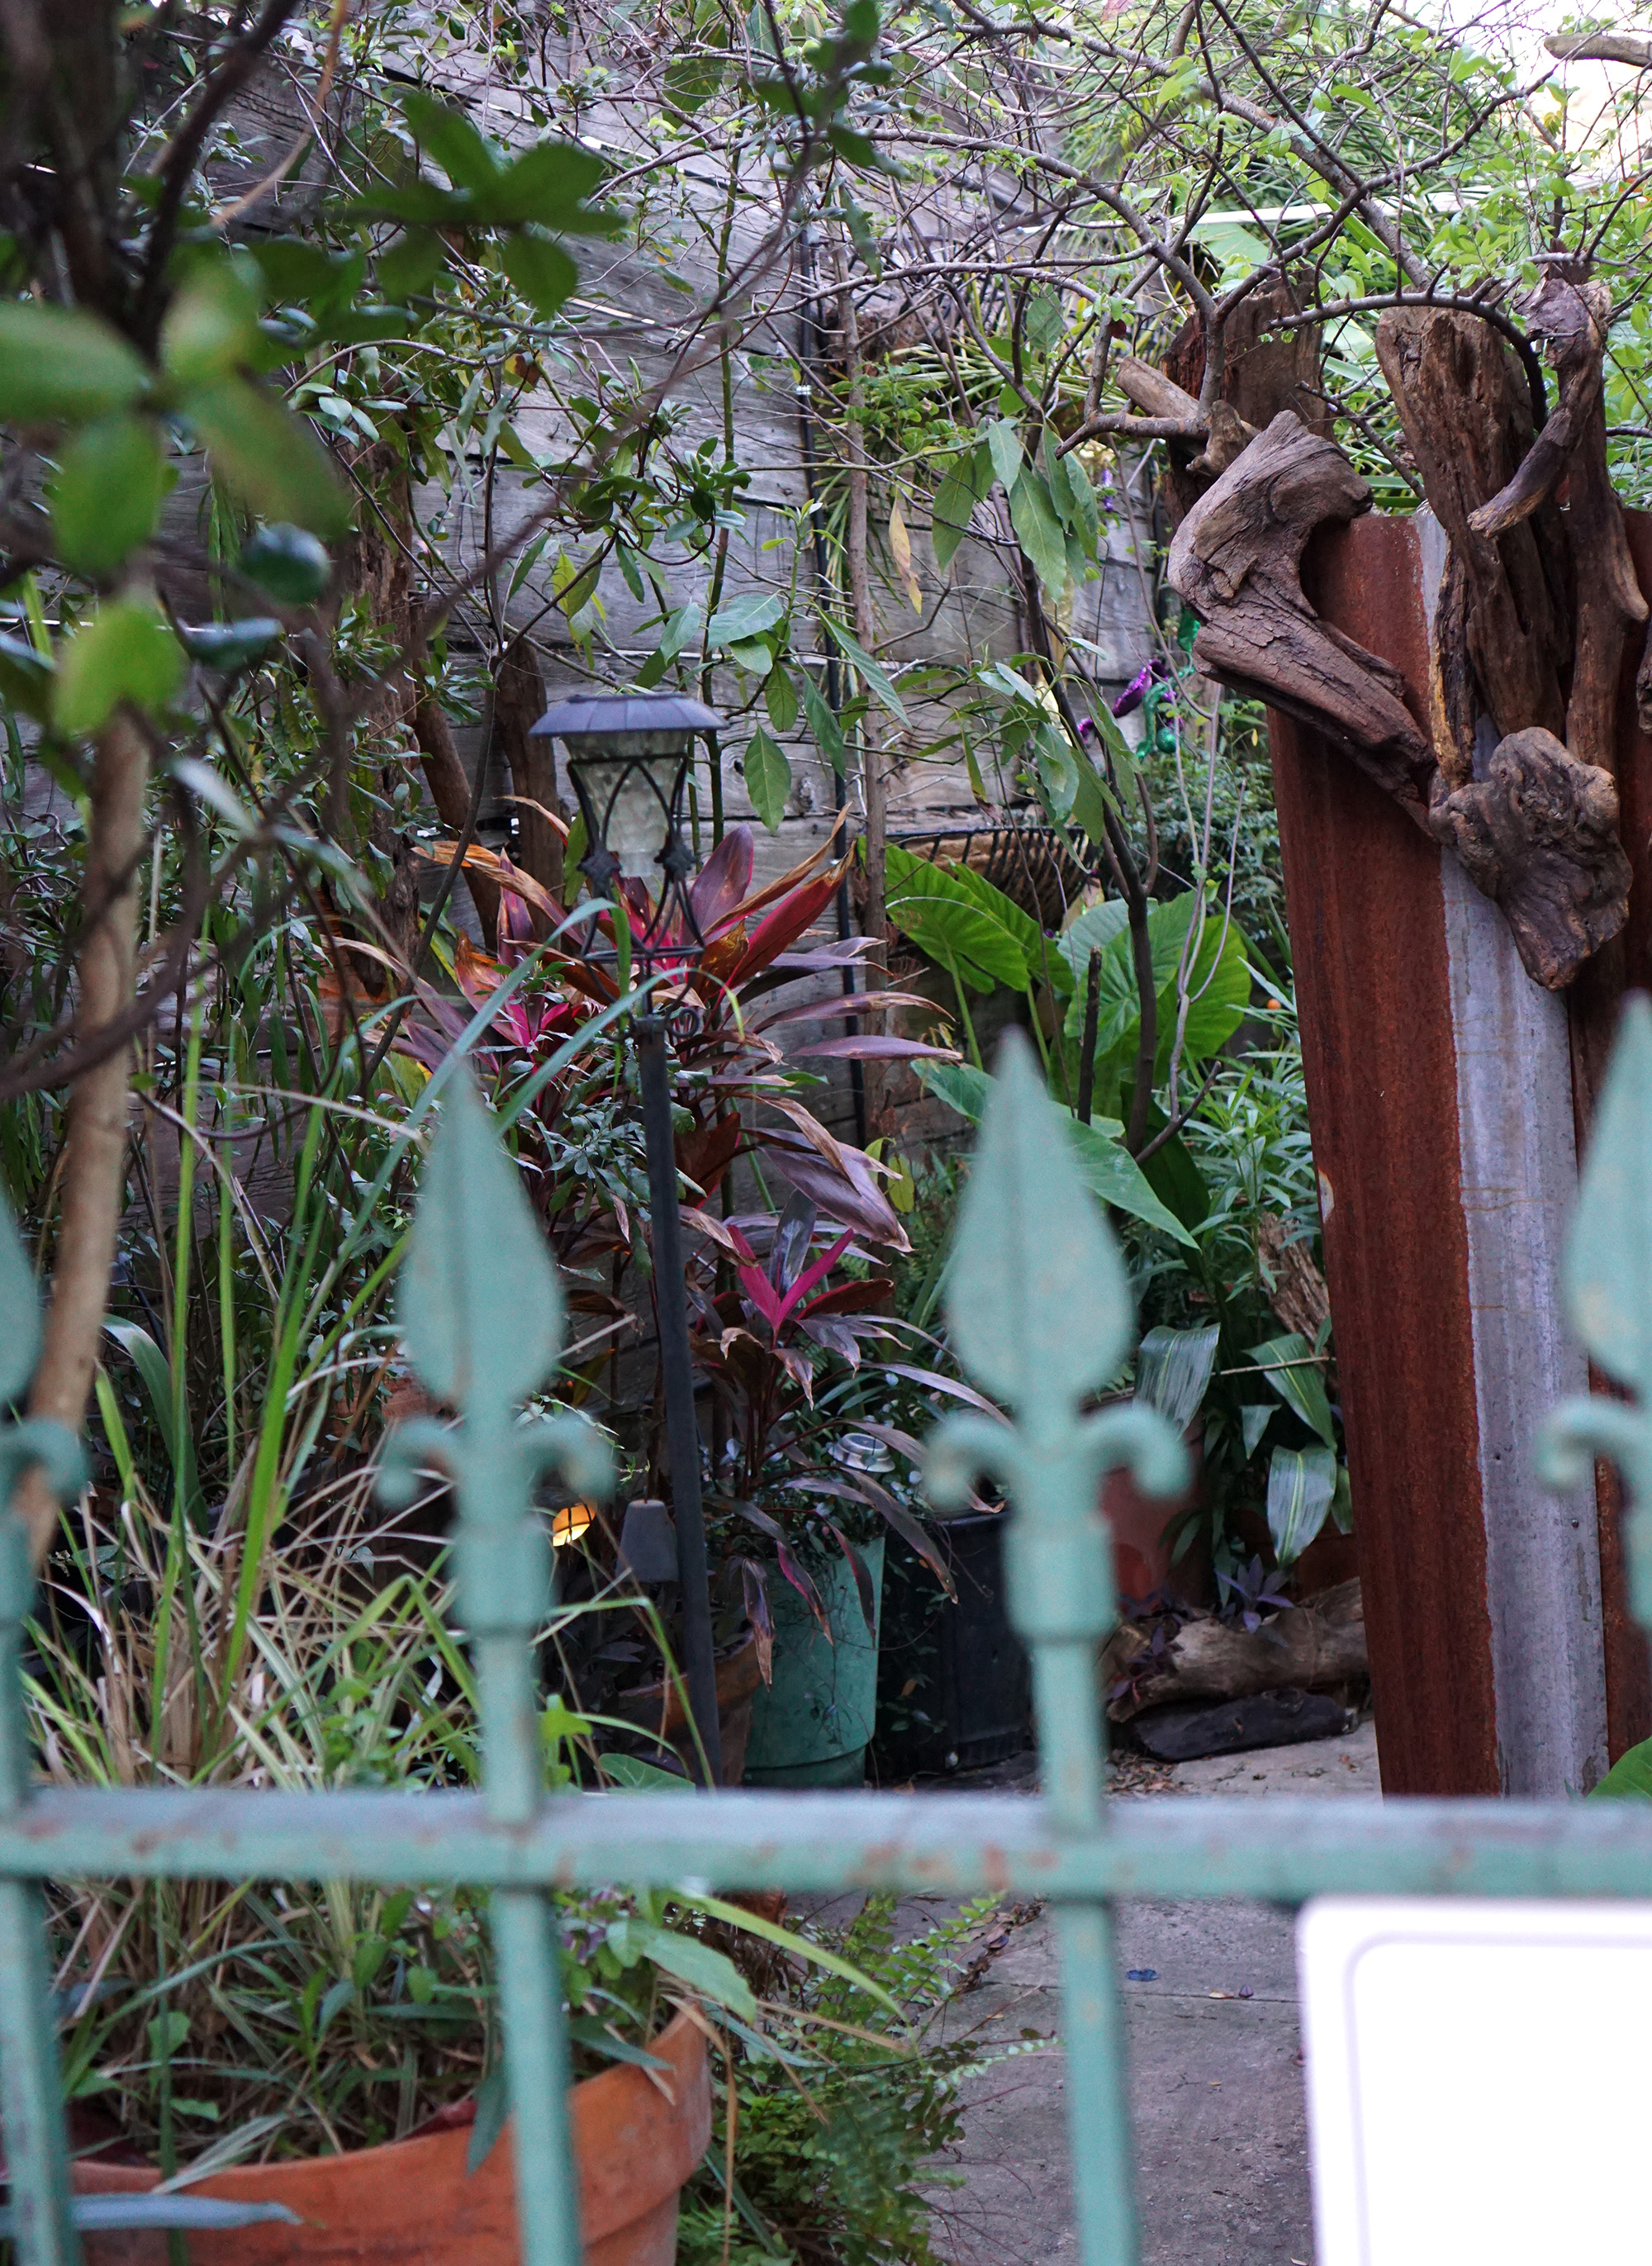 Backyard container garden in the Marigny, New Orleans / Darker than Green